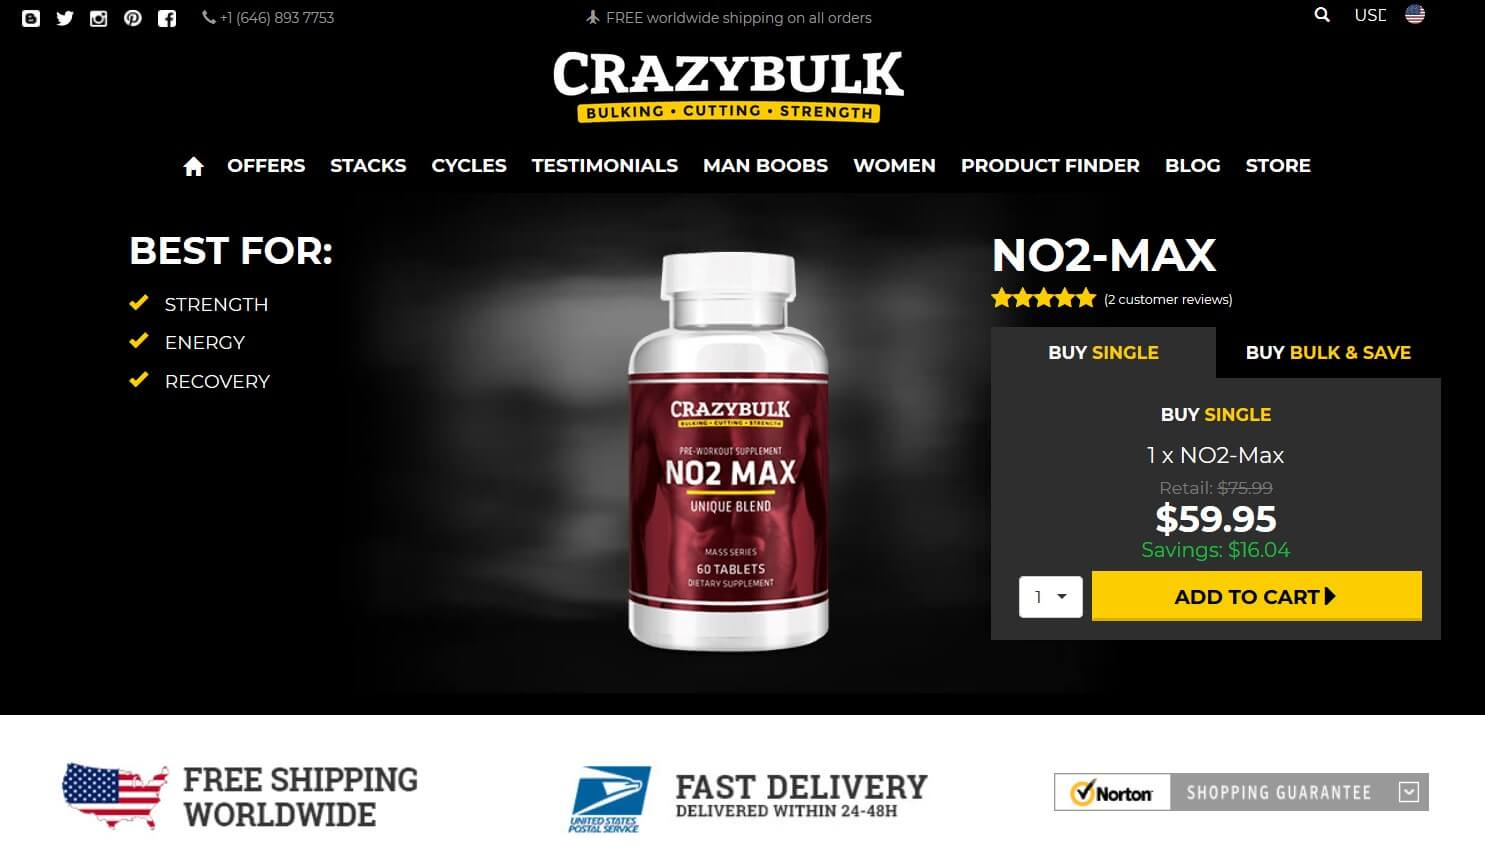 no2-max website